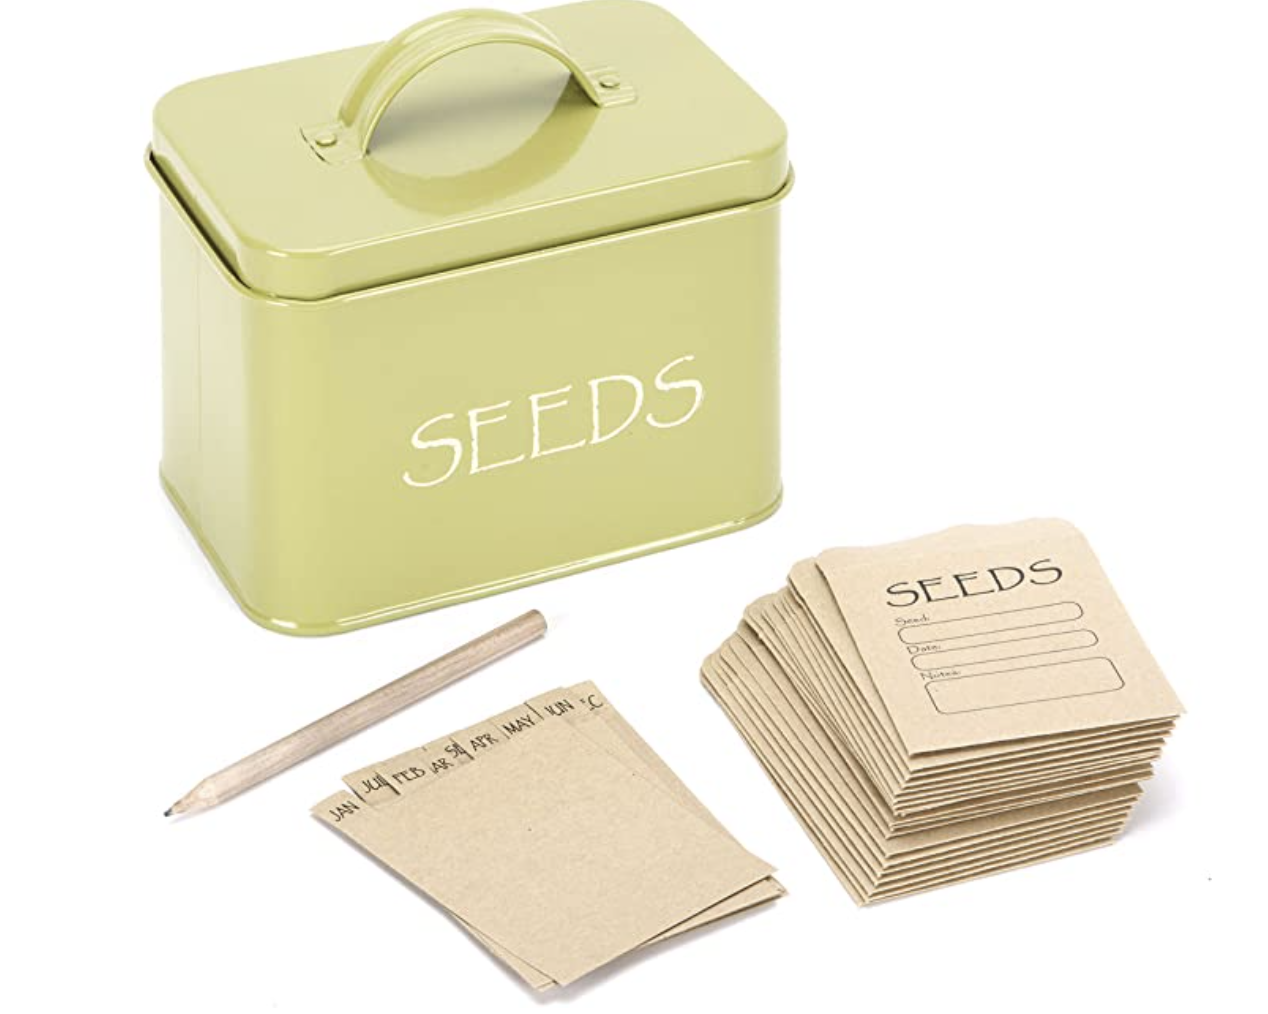 seed storage box with envelopes